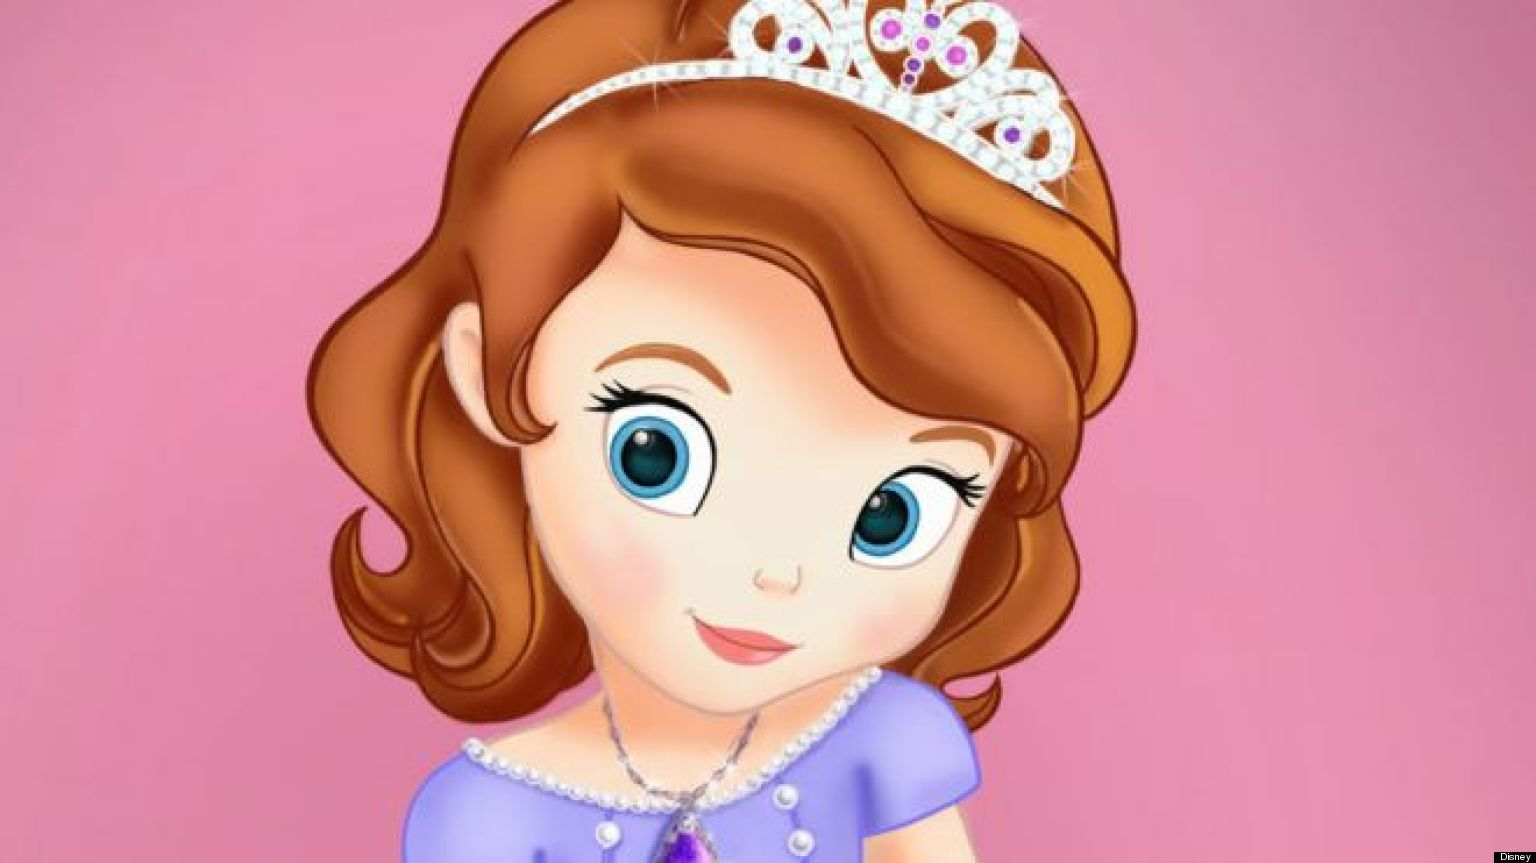 Sofia - Sofia The First Eyes , HD Wallpaper & Backgrounds